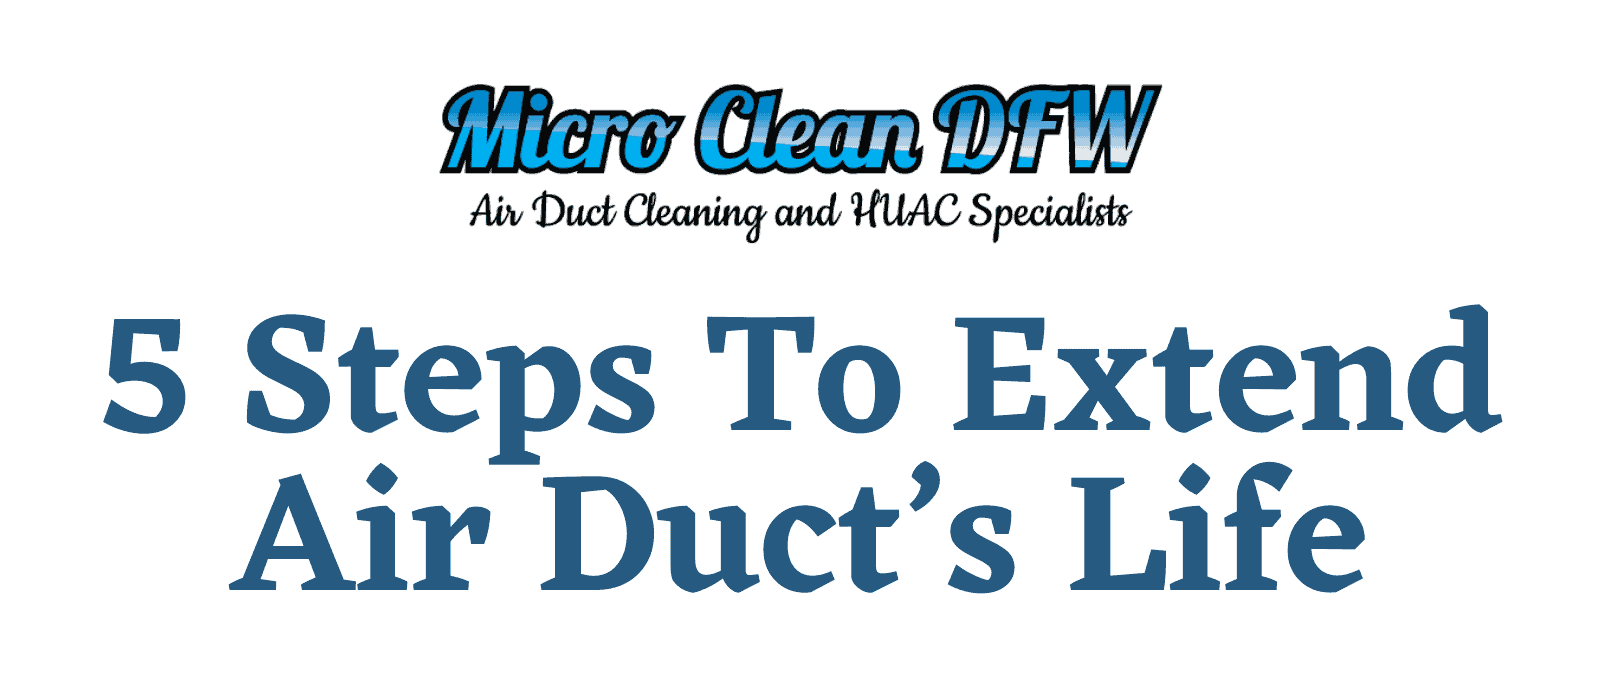 5 Steps To Extend Air Duct's Life [Infographic]